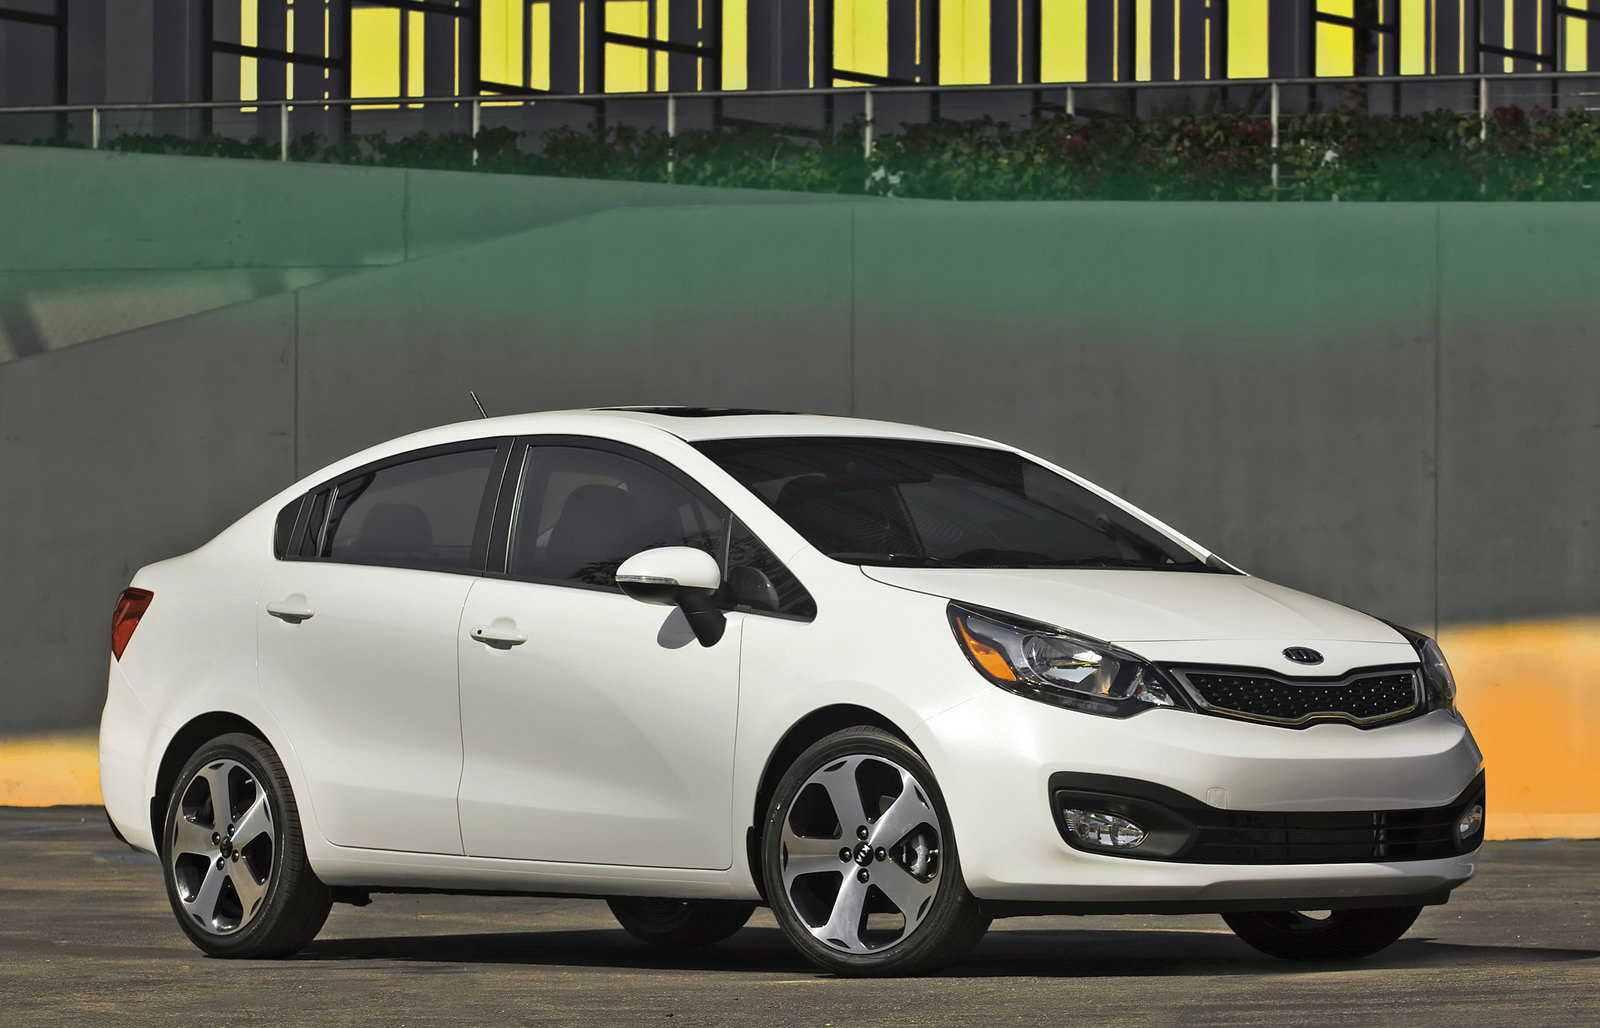 Kia Rio   ReViEw 4 CArS AnD TrUcKs